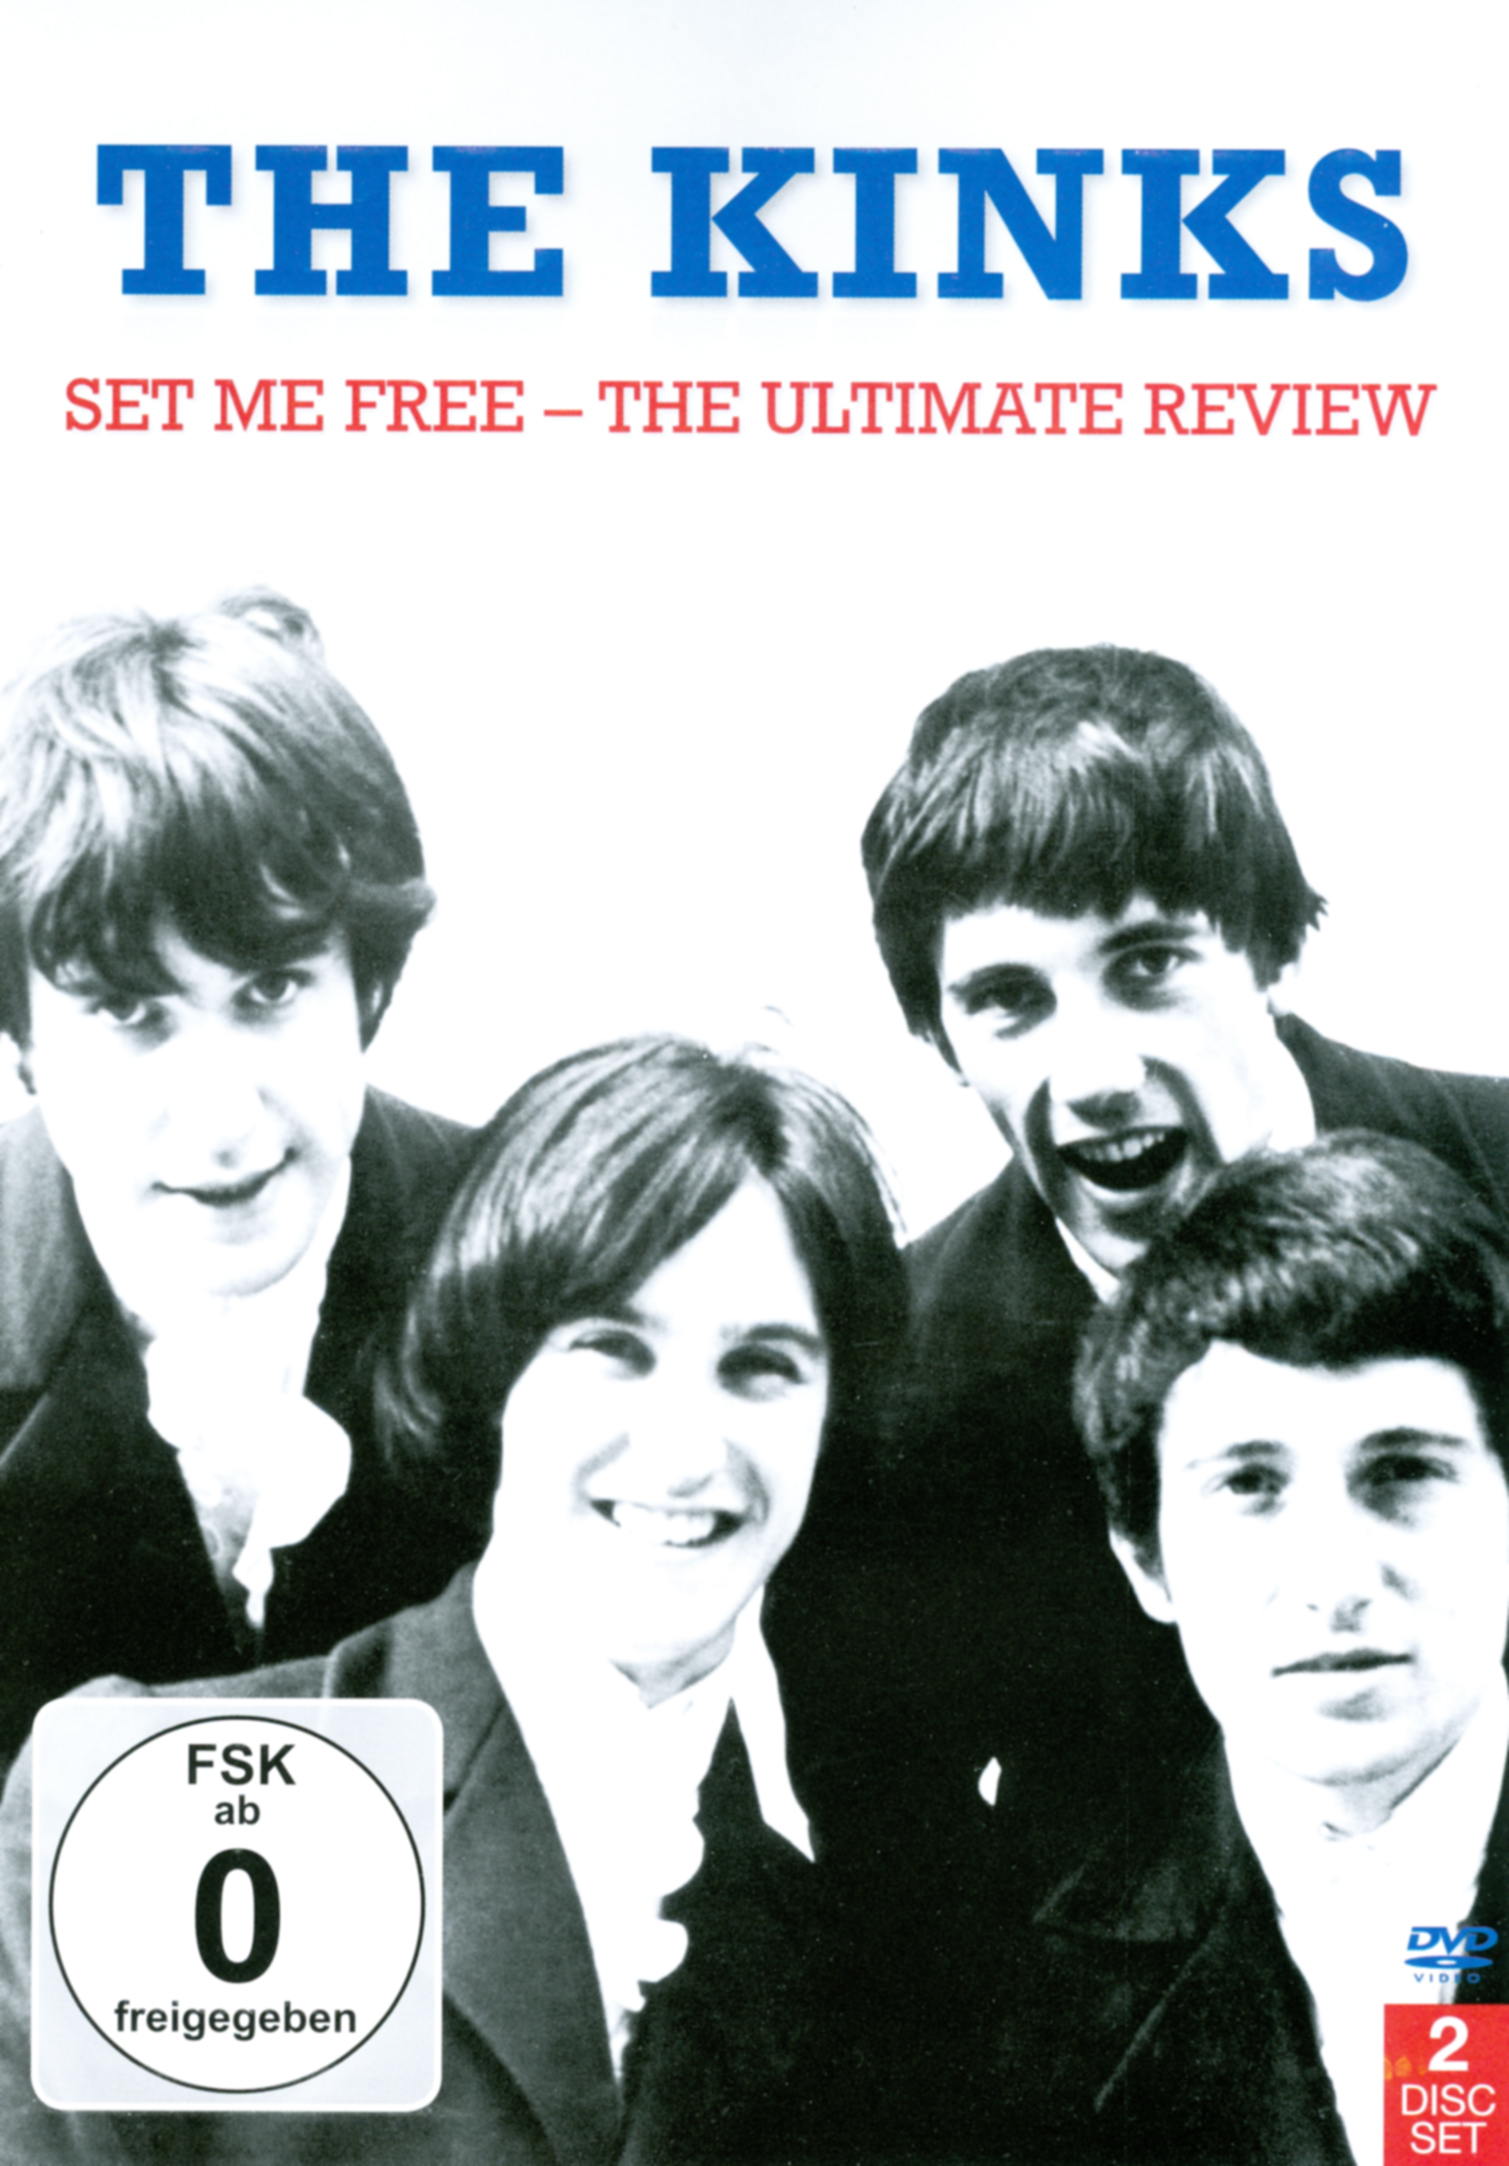 The Kinks: Set Me Free - The Ultimate Review